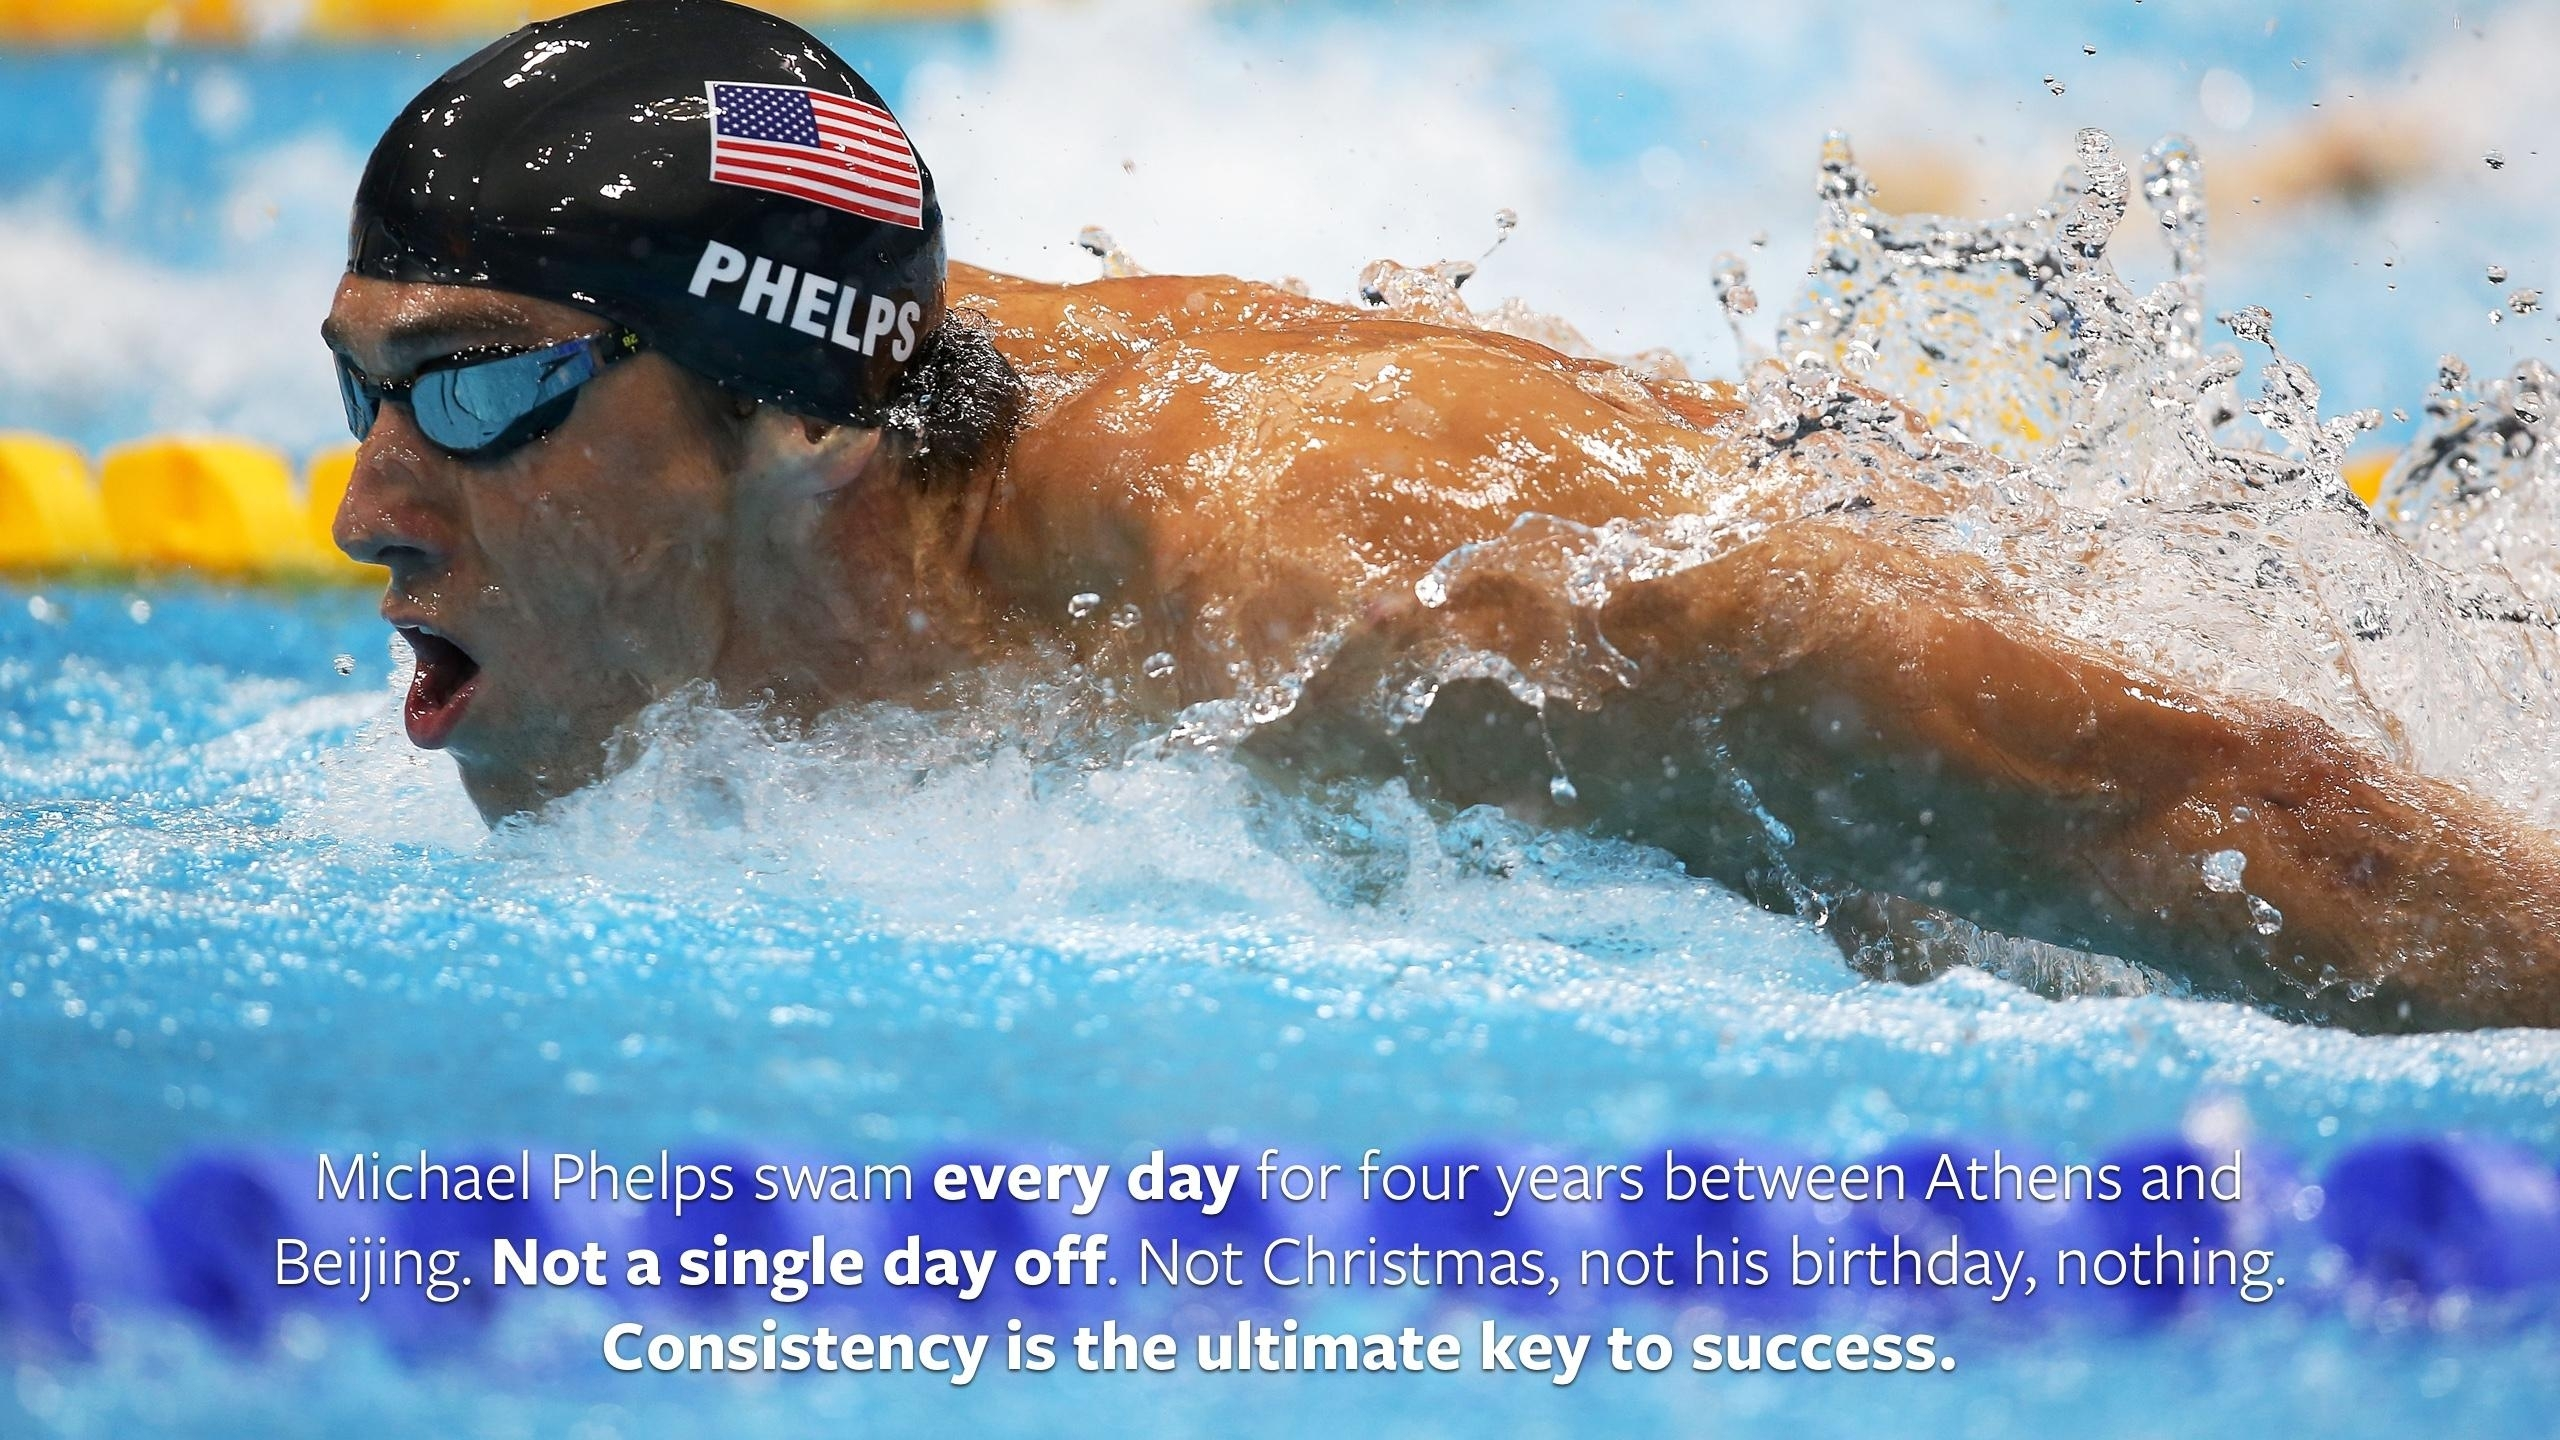 loved that quote about michael phelps swimming every day, made a